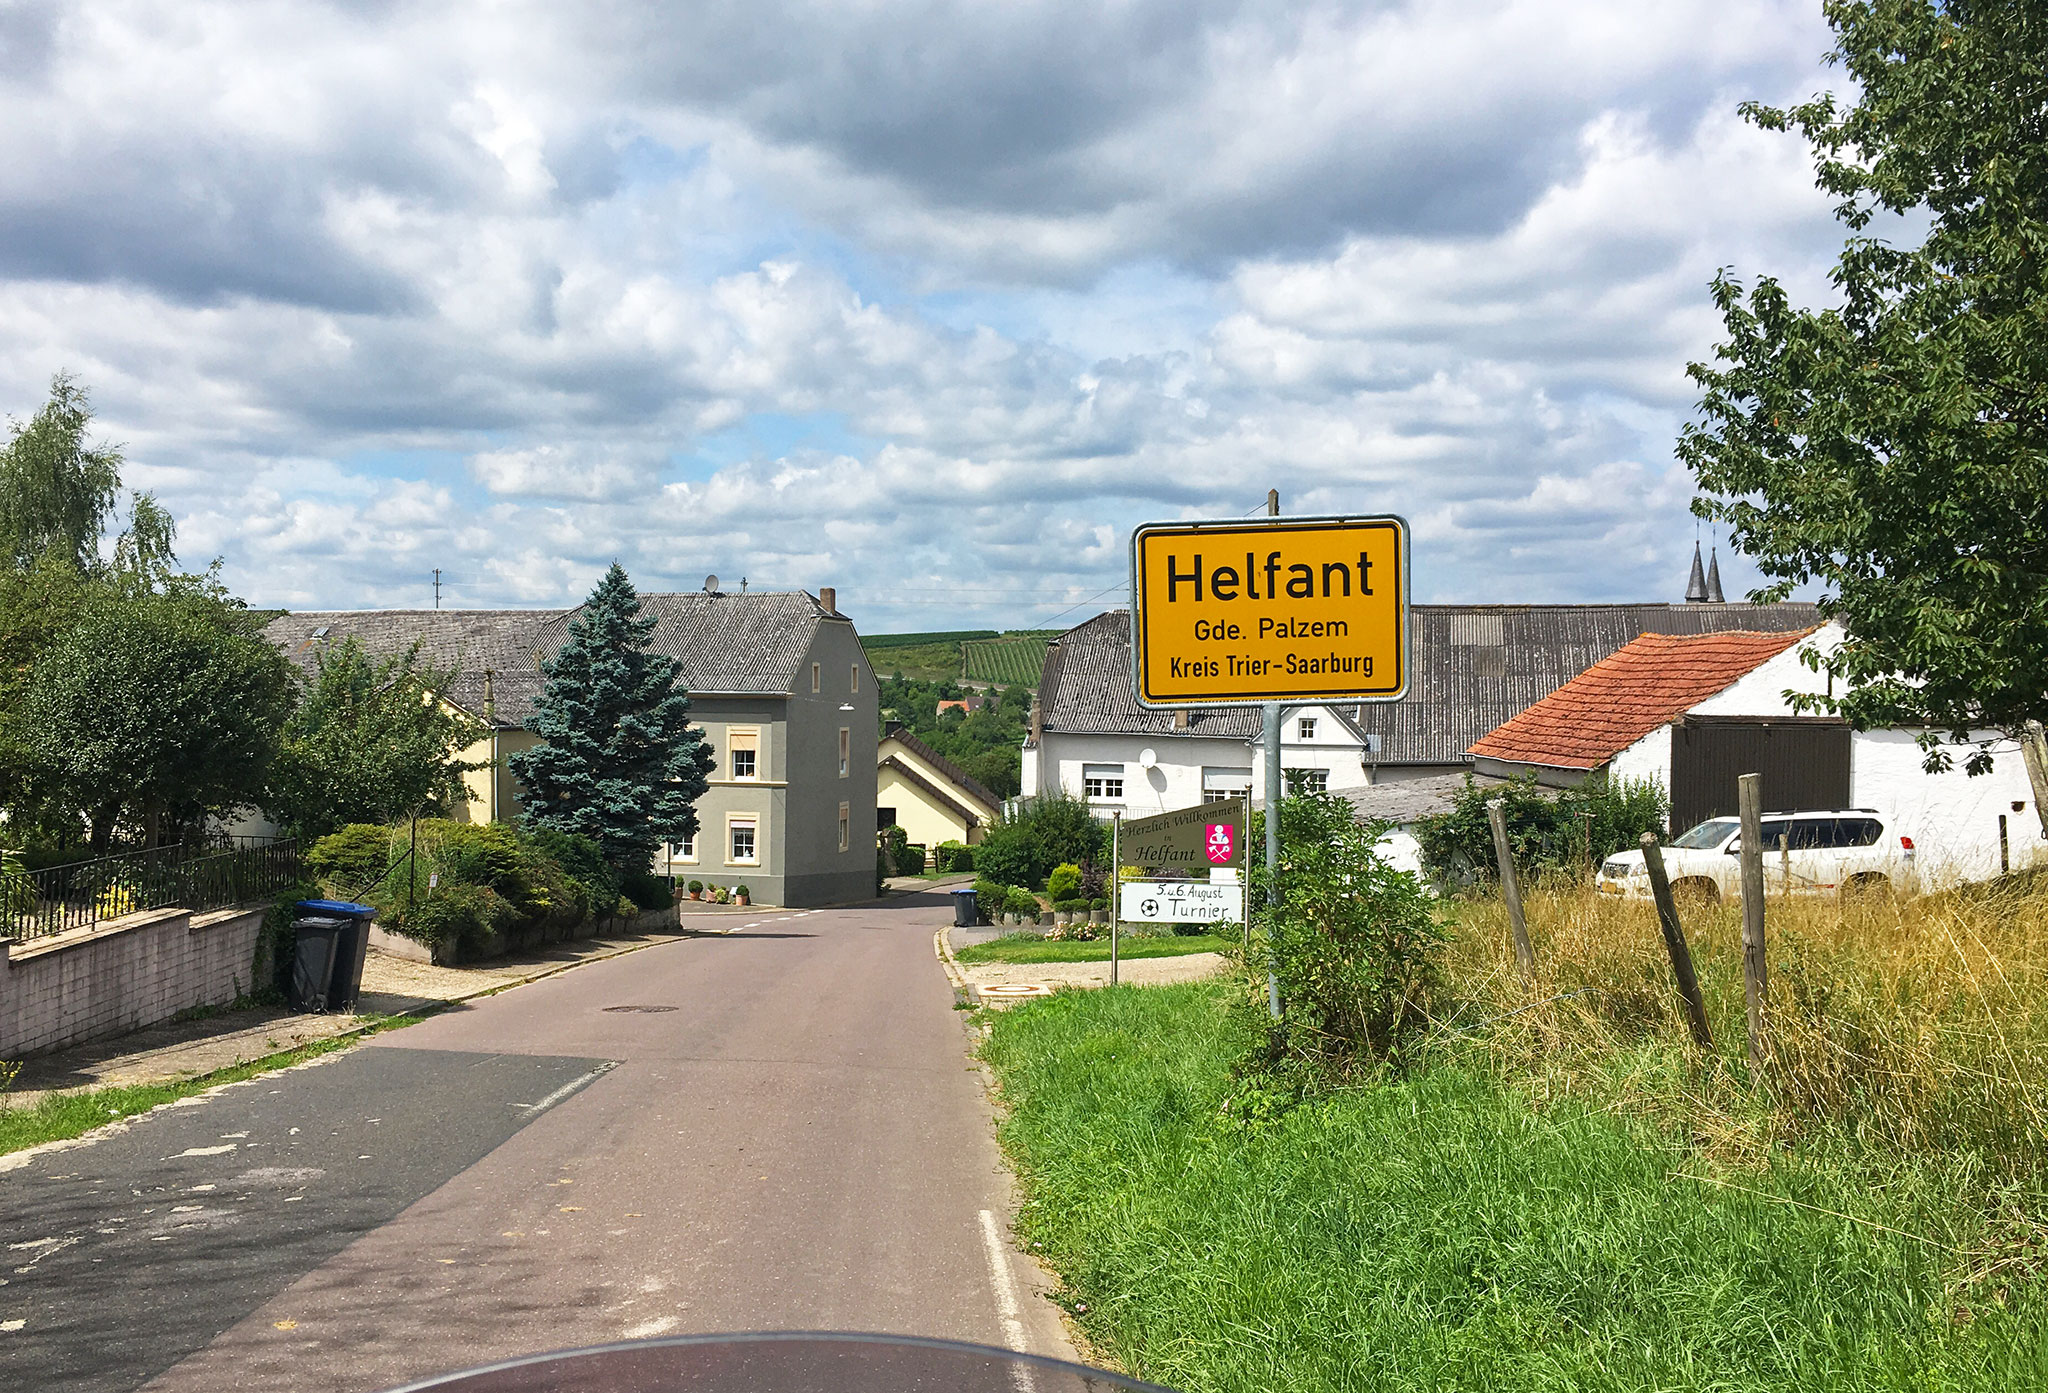 The world famous city of Helfant, in Germany (just kidding)